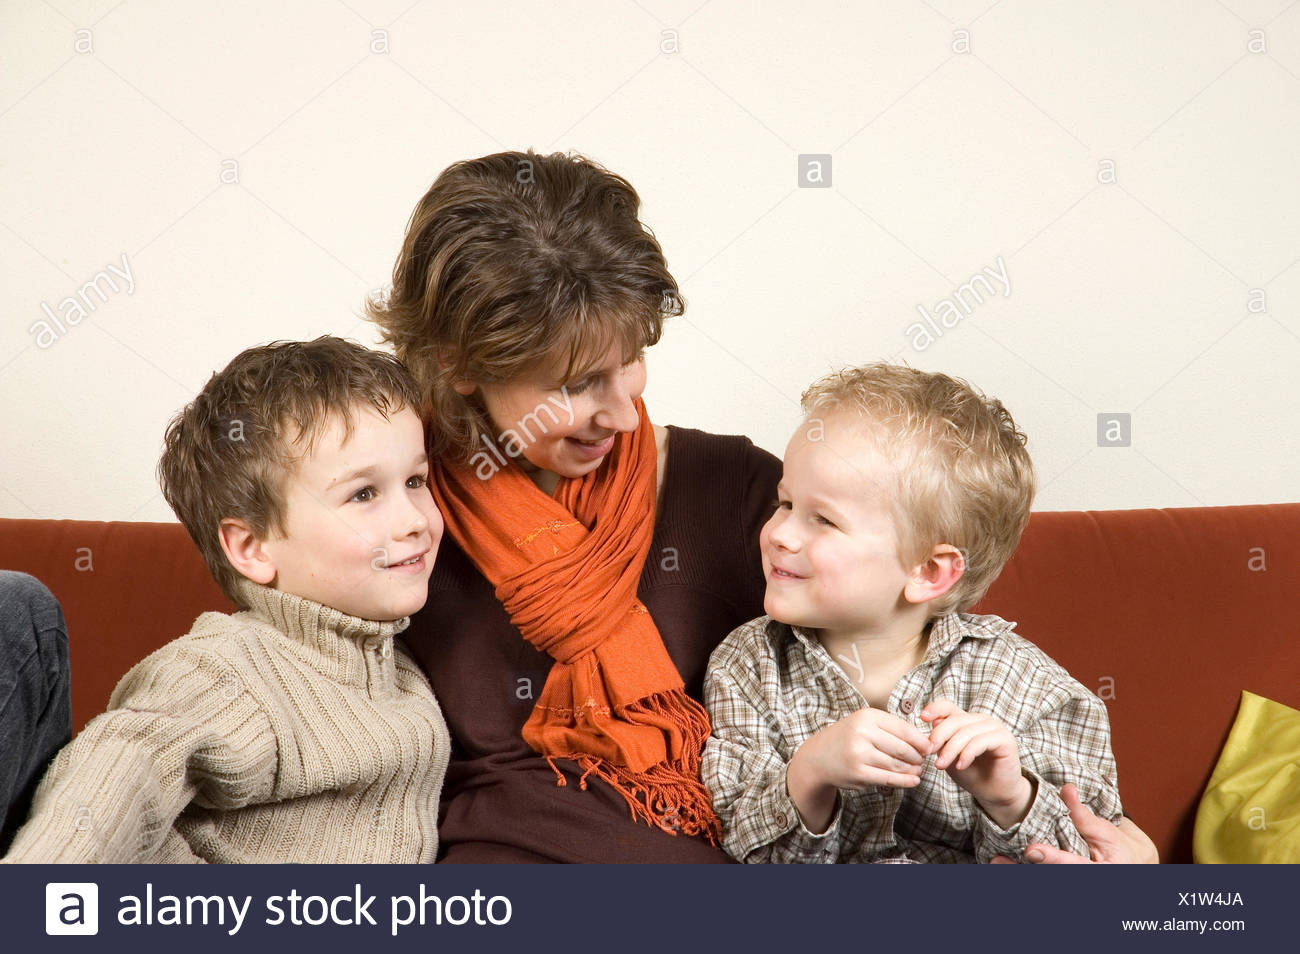 Mother And Two Sons 2 - Stock Image